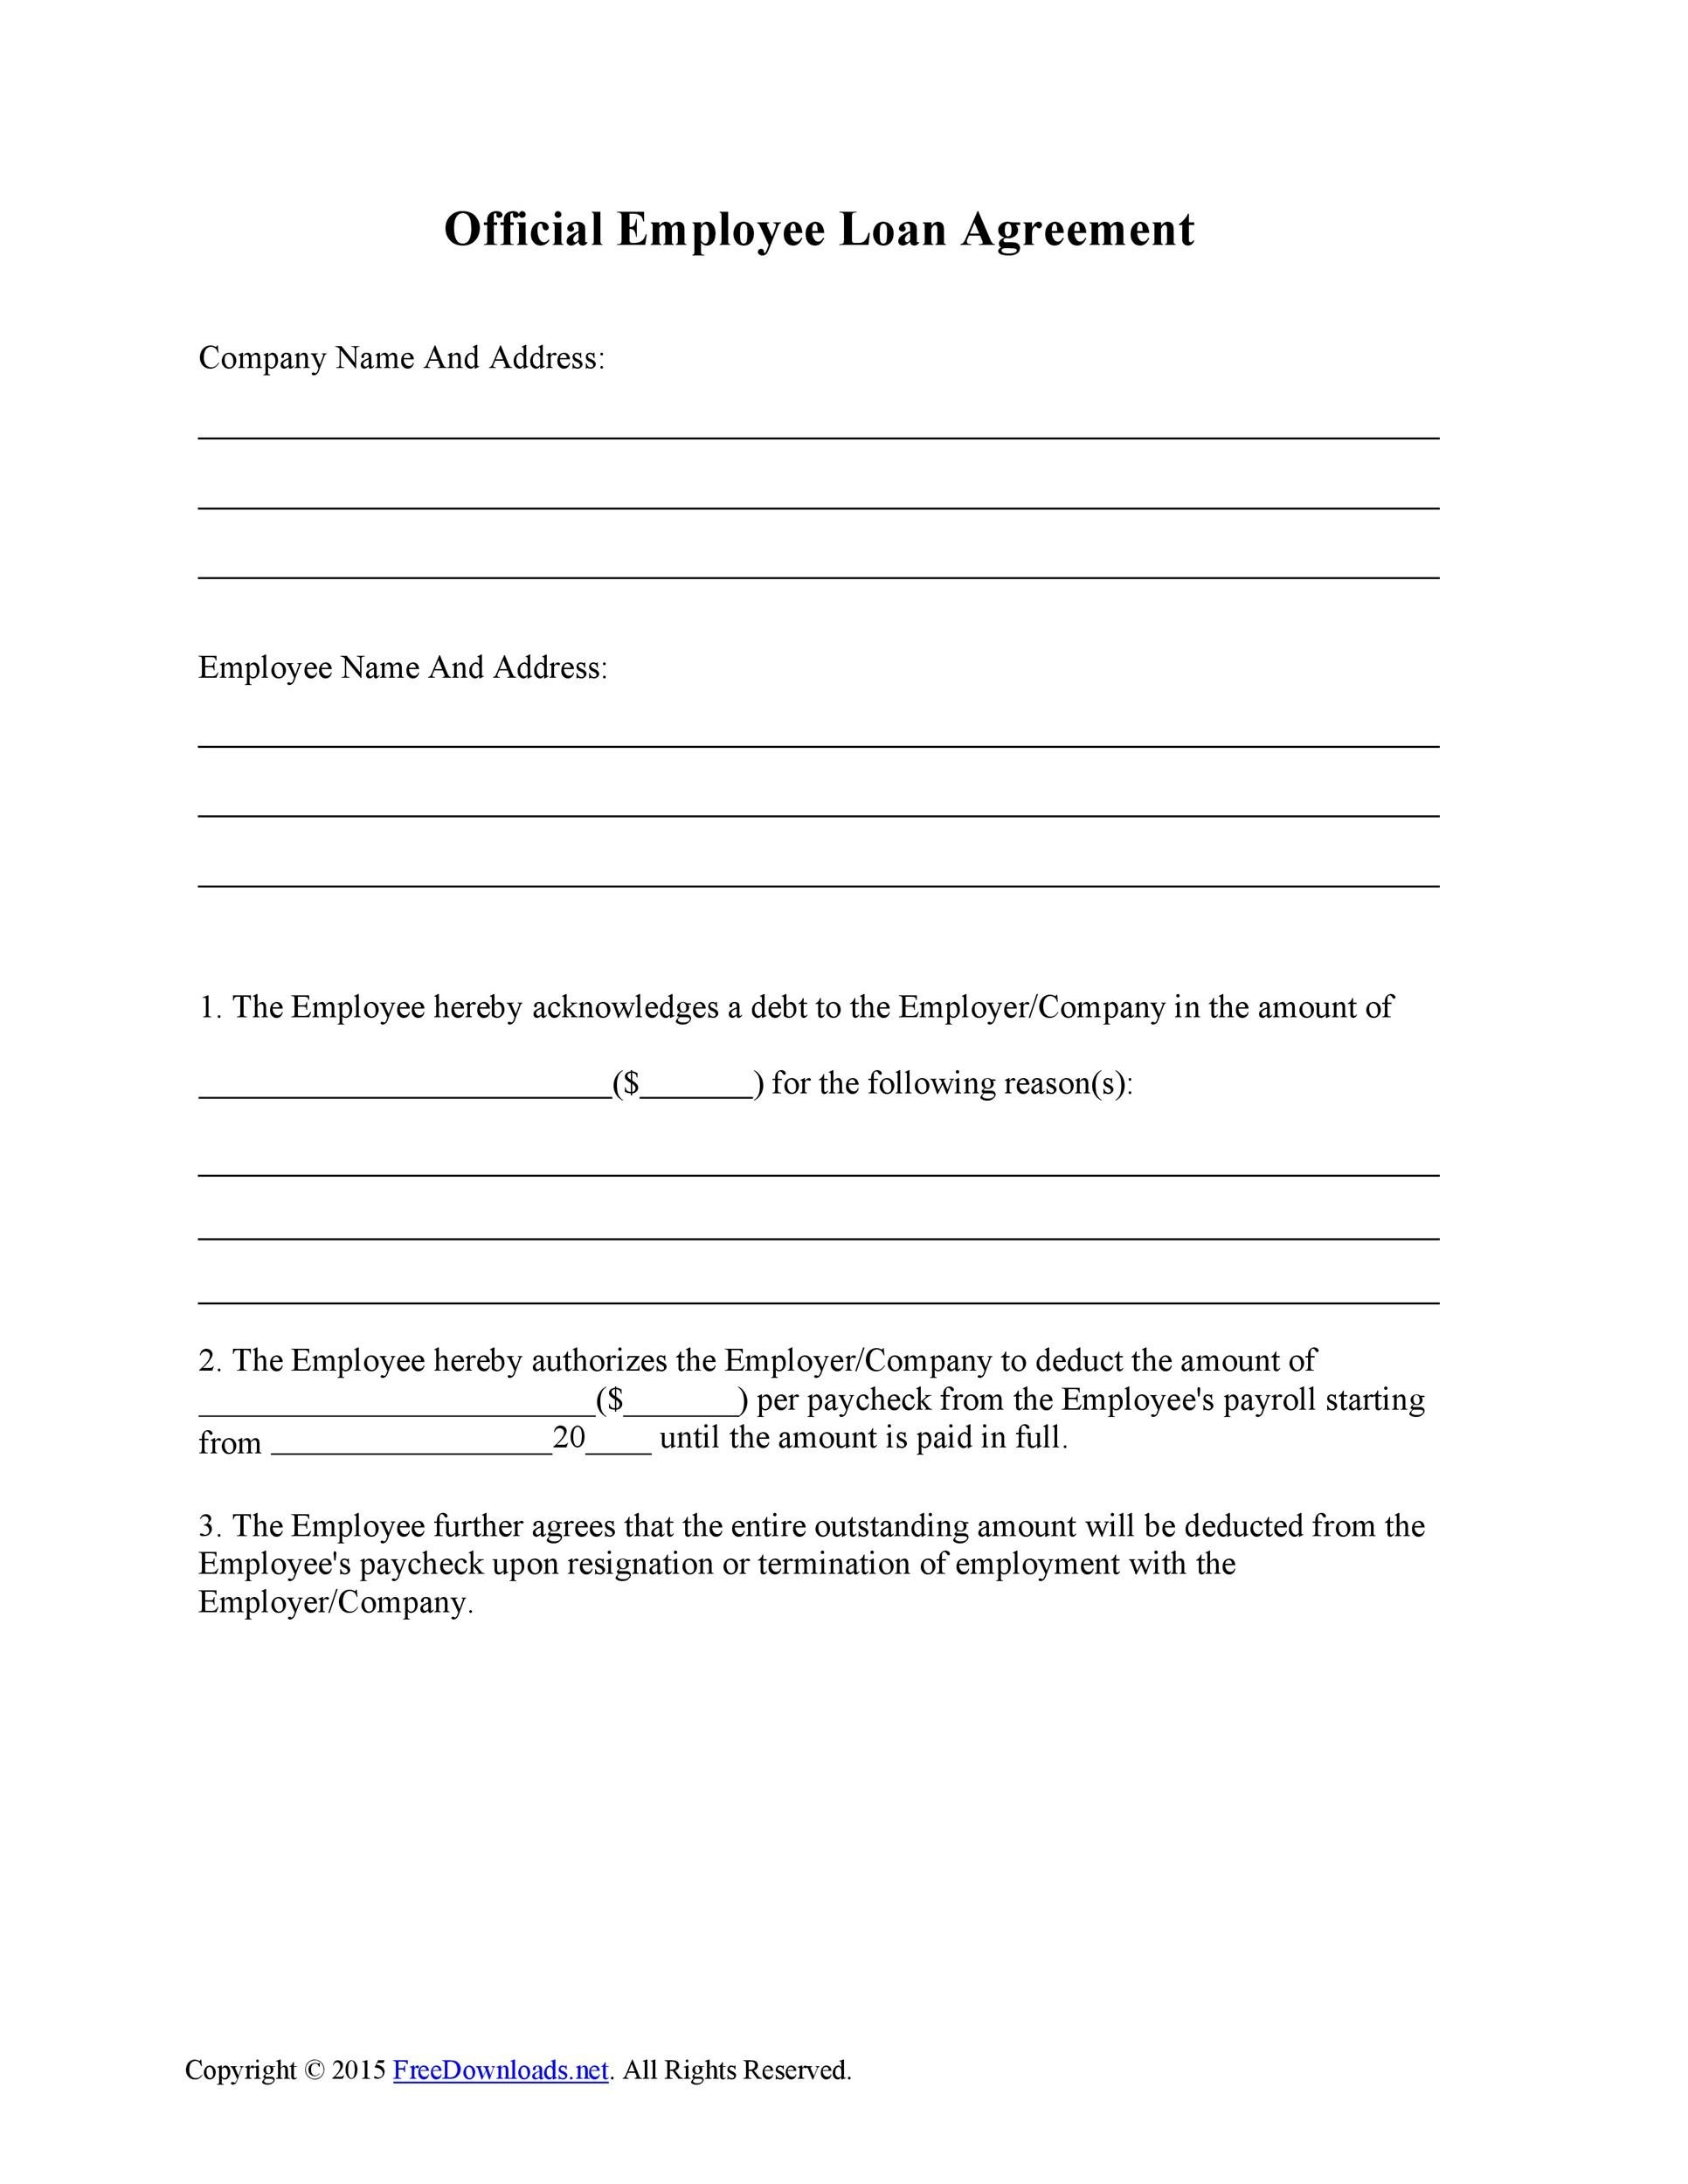 40 Free Loan Agreement Templates Word Pdf ᐅ Template Lab